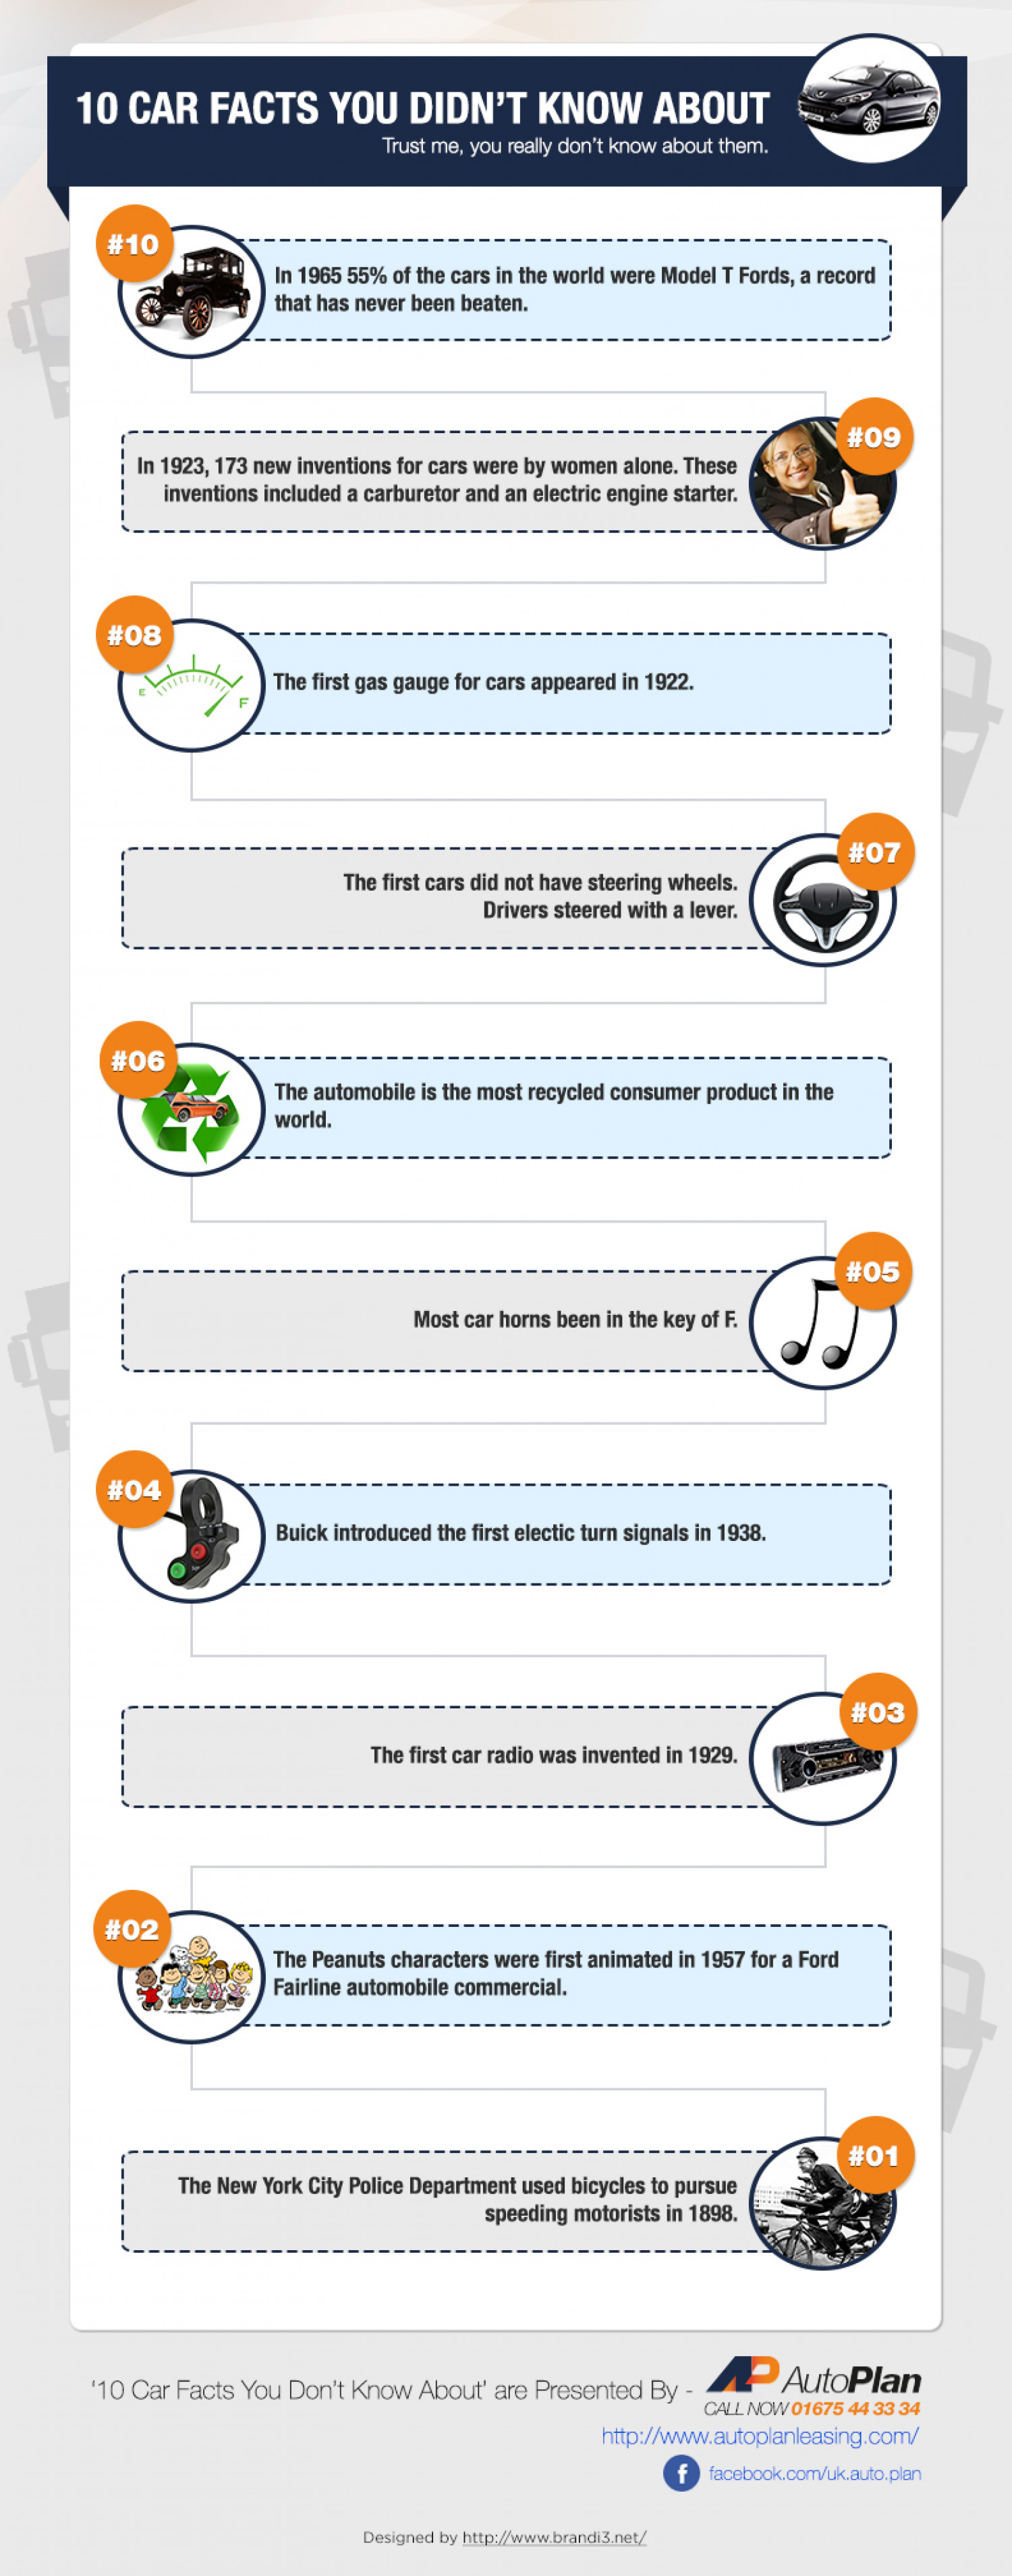 10 Car Facts You Did Not Know About Infographic